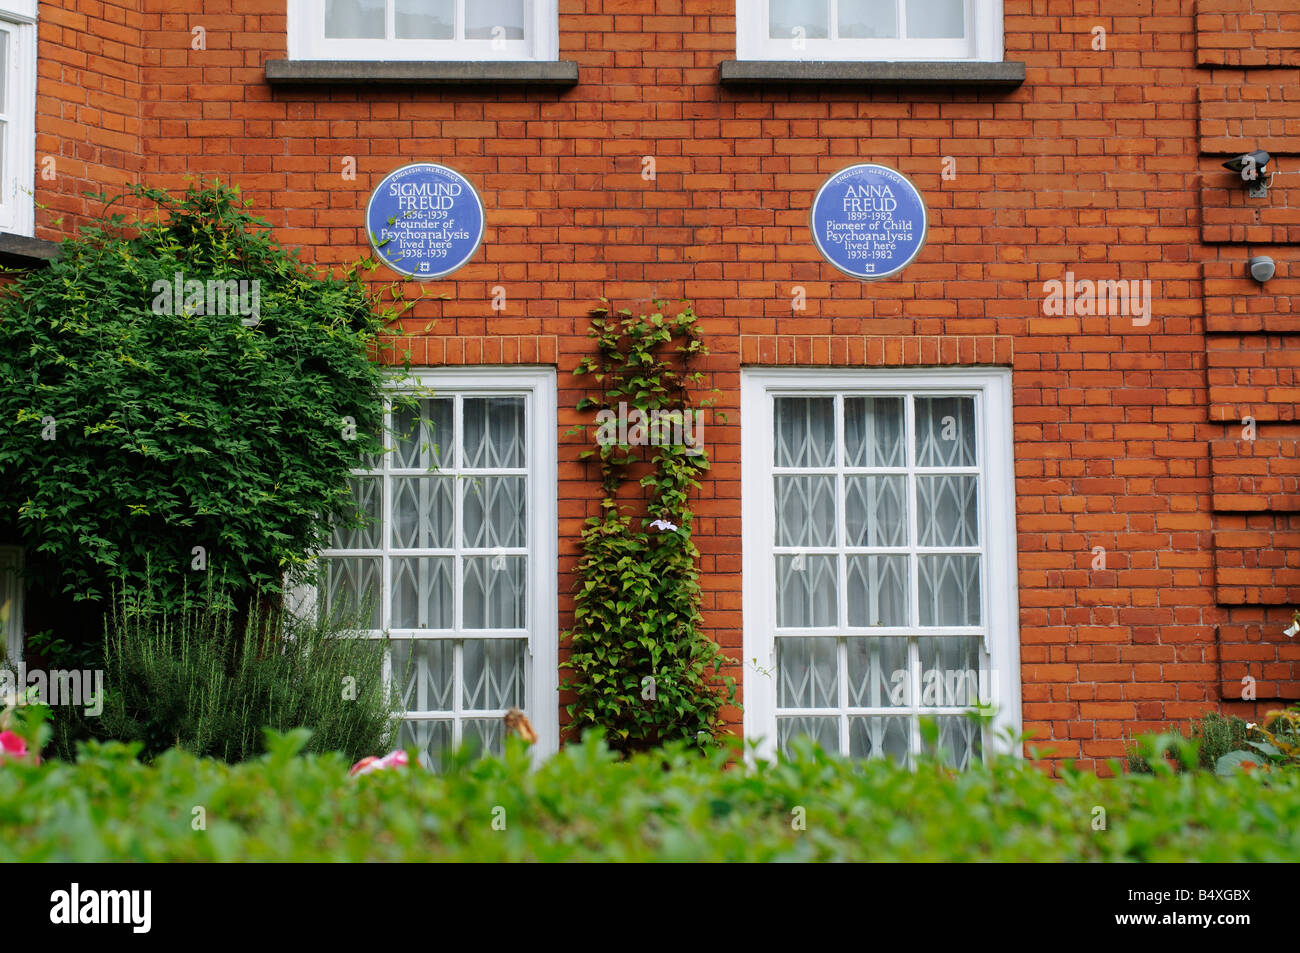 Freud's Museum in London - Stock Image